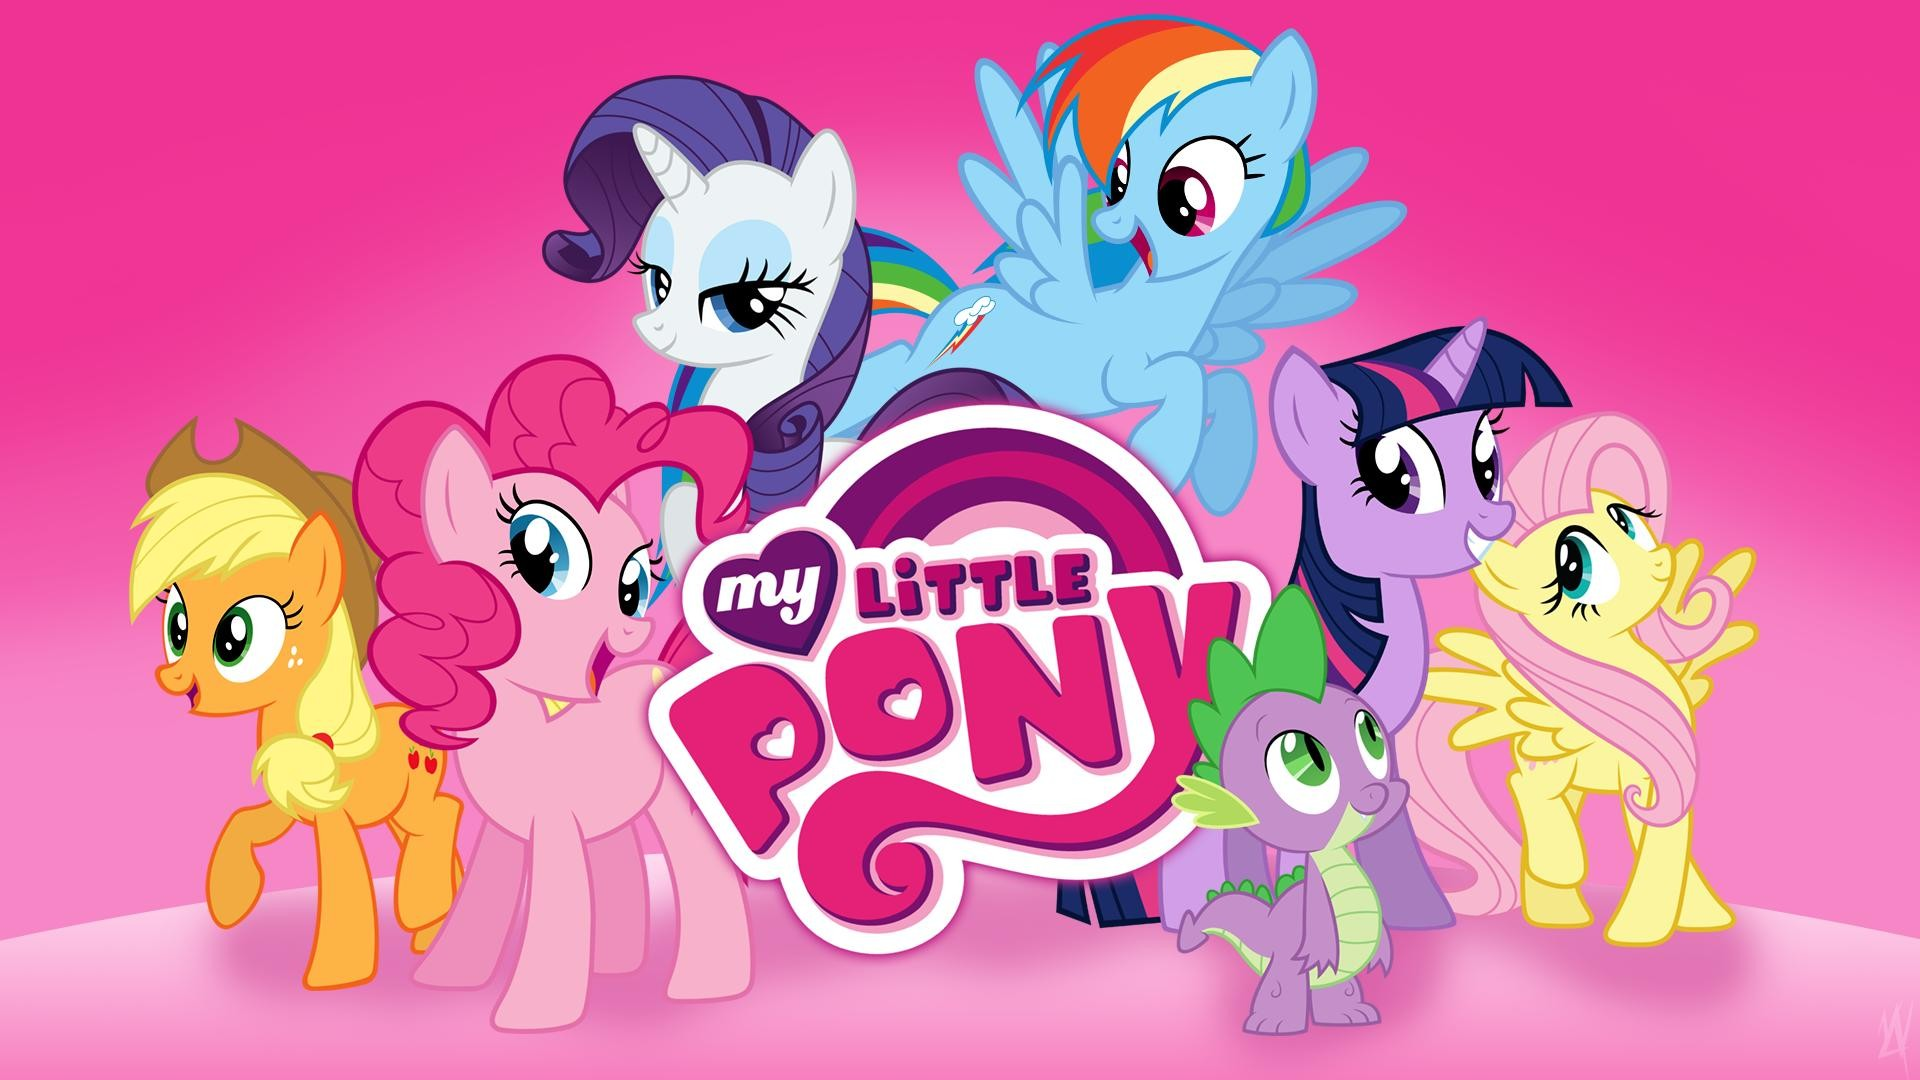 My Little Pony Wallpapers Wallpapertag